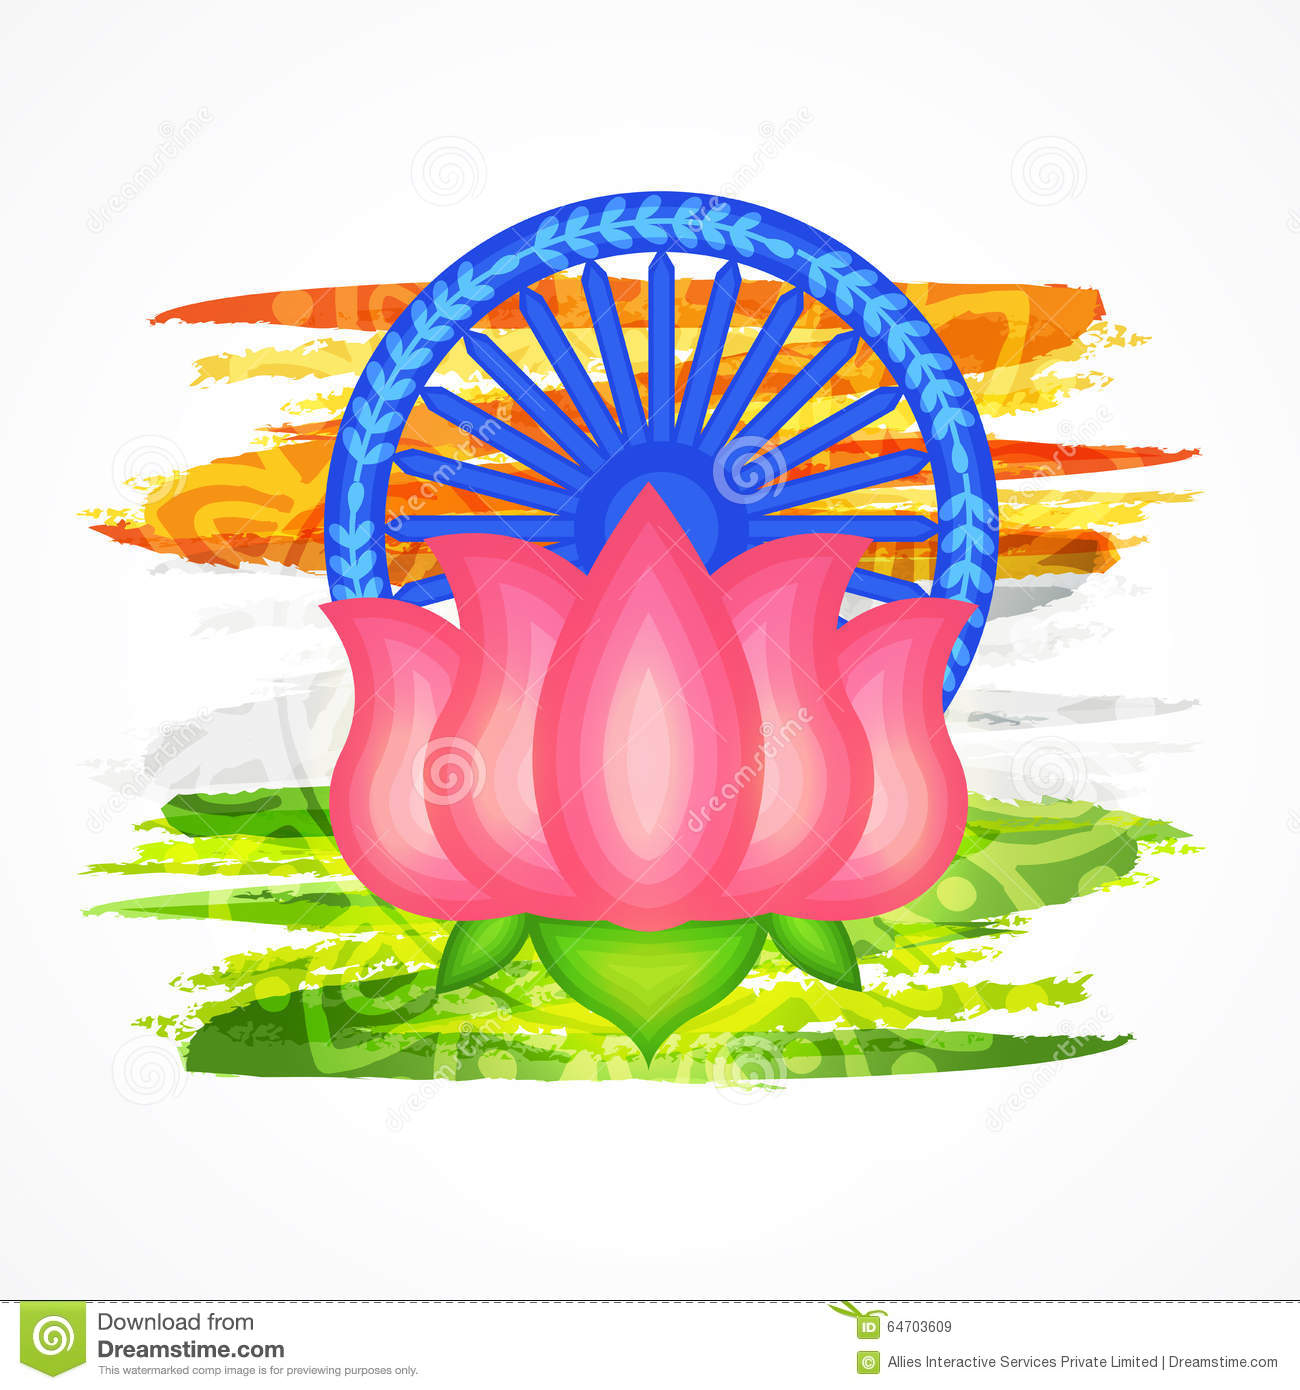 Indian National Flower Lotus For Republic Day. Stock Illustration.